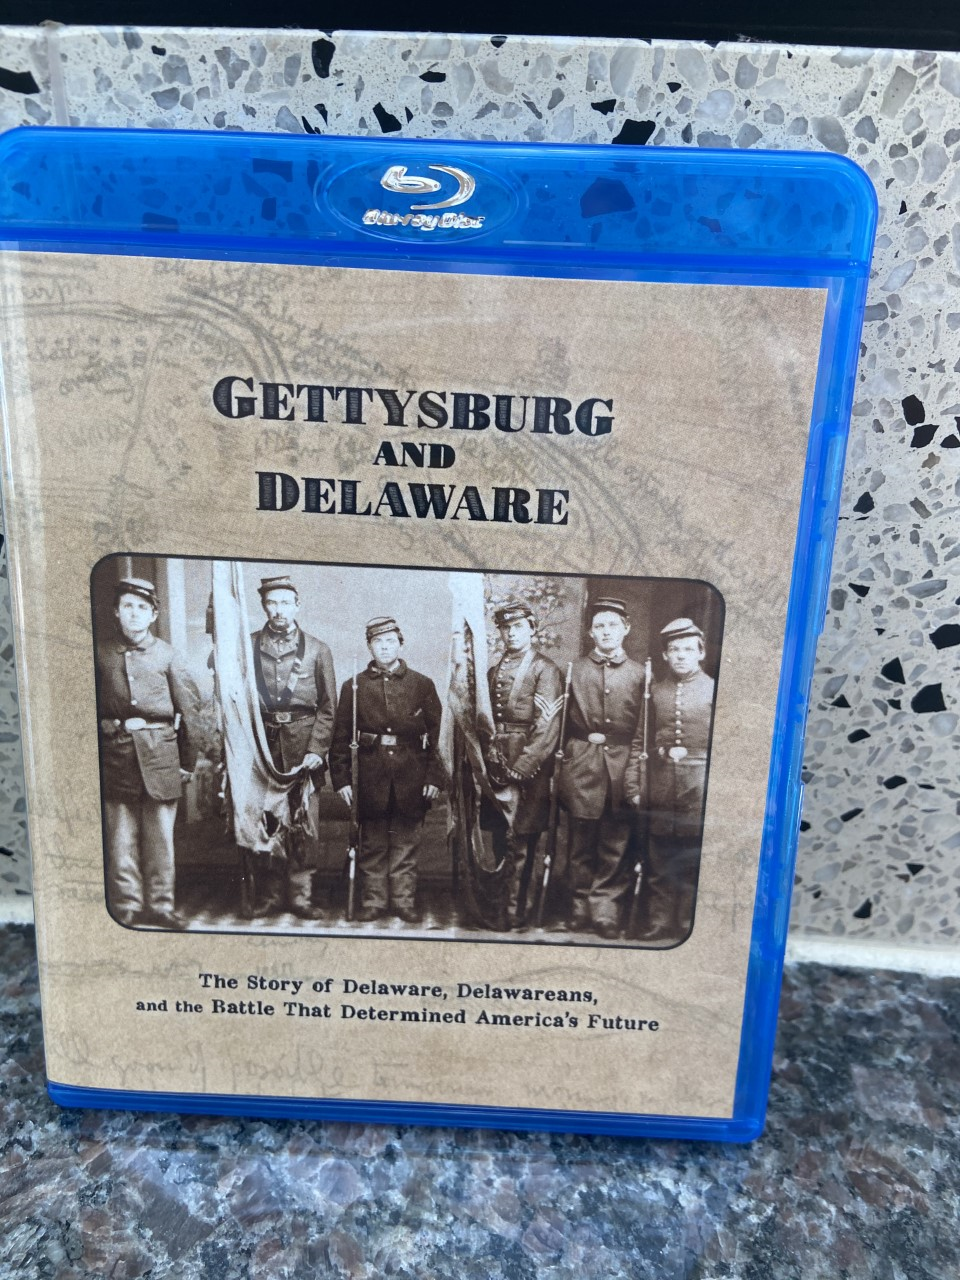 Gettysburg and Delaware: the Story of Delaware, Delawareans, and the Battle that Determined America's Future, Blu-Ray, O.K. Video, 2020. Prices Relect the Cost of the Blu-Ray plus S&H of $3